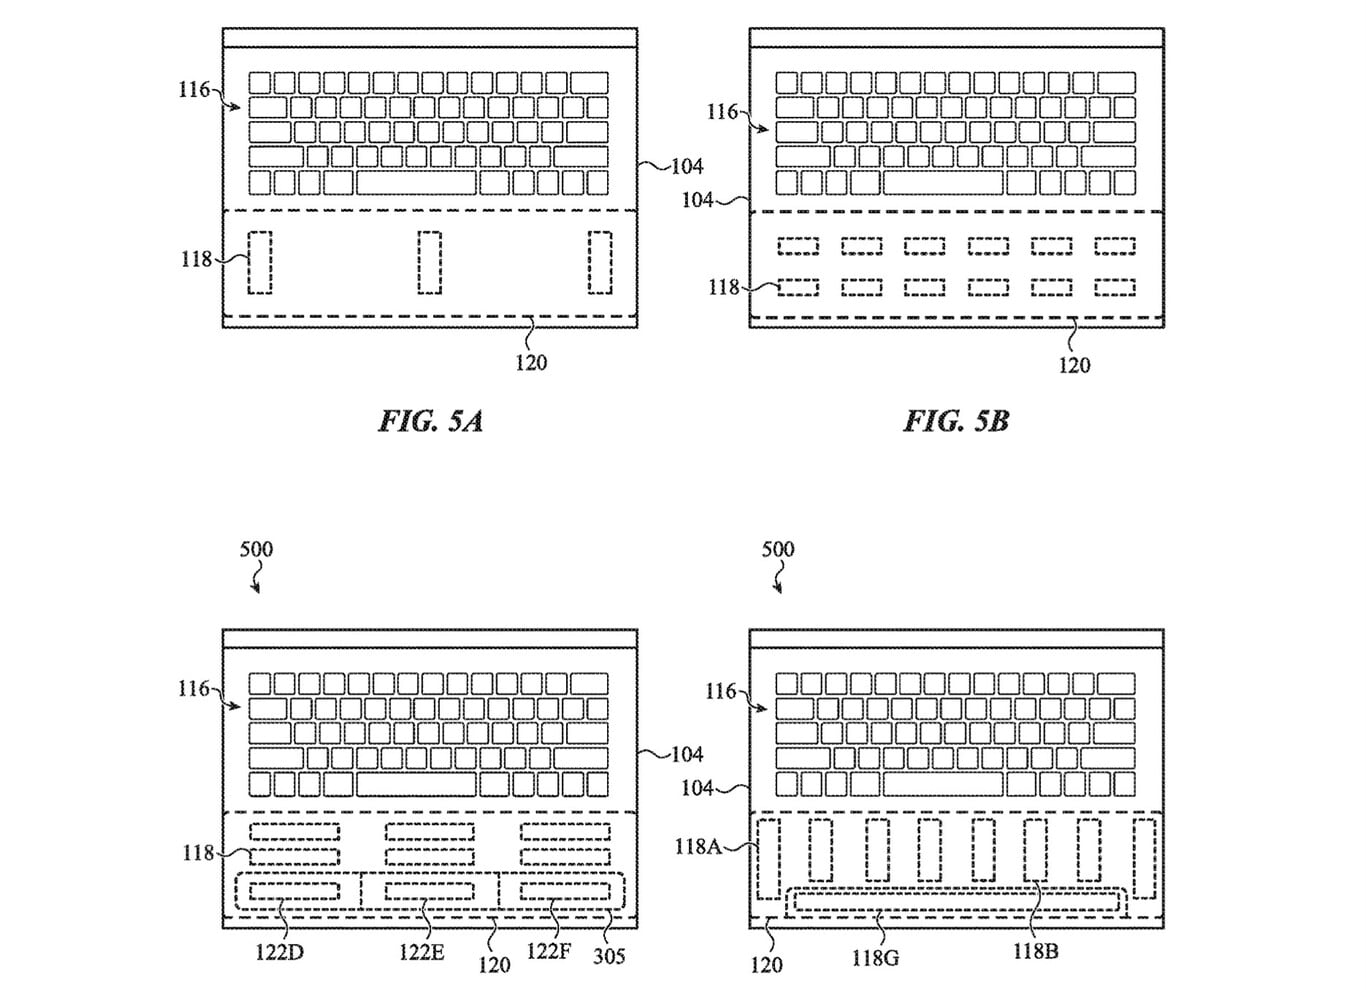 Apple's new patent shows future Macbook design with multiple haptic areas